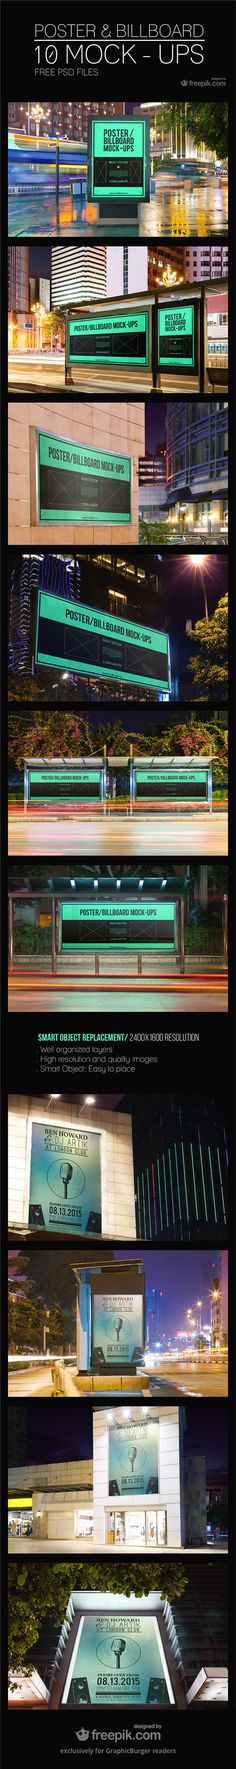 I'm glad to share with you this high quality set of 10 urban poster and billboard mock-ups that offers a great variety...